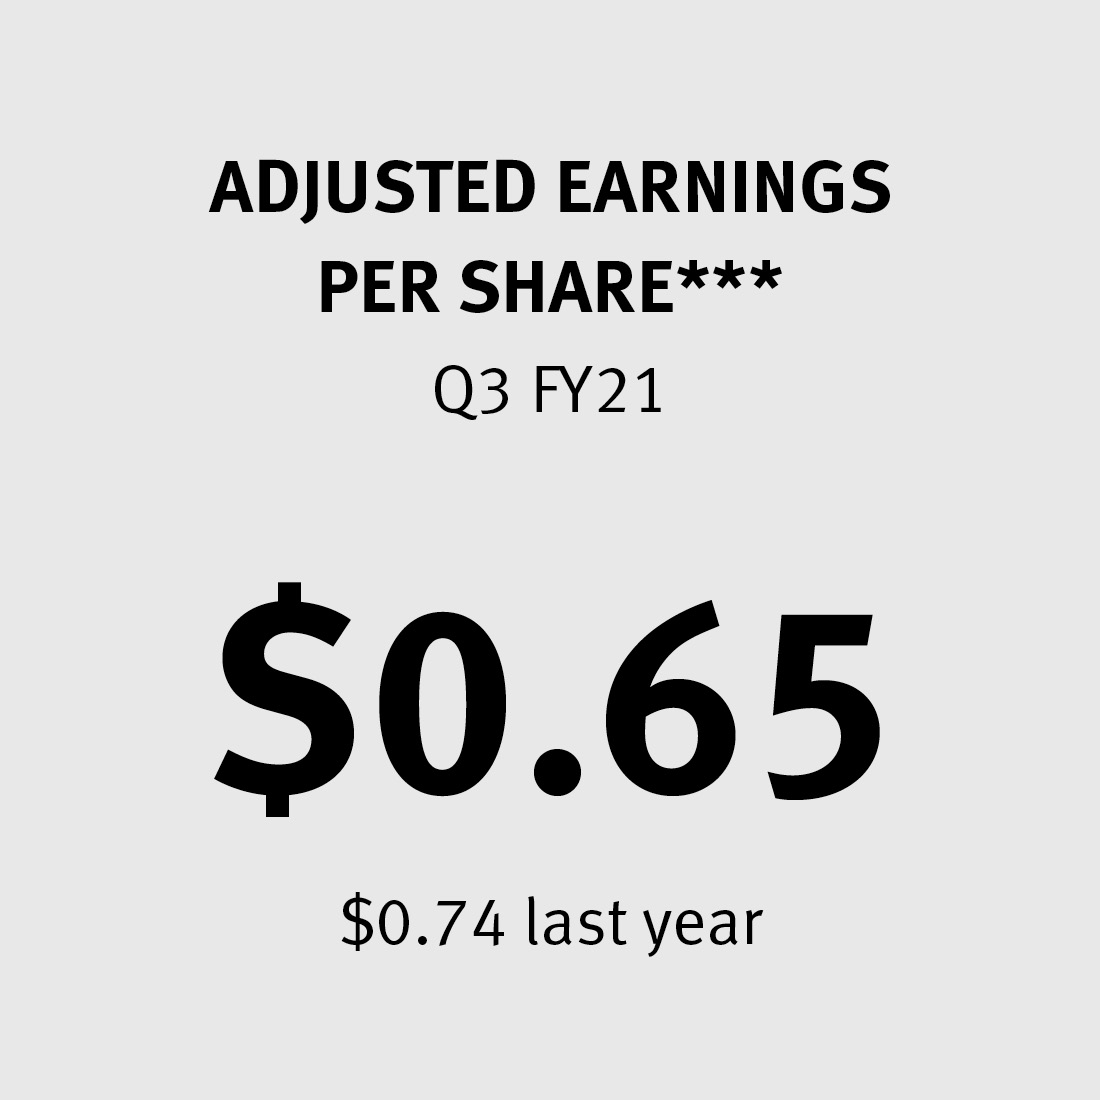 Adjusted Earnings per Share $0.65 ($0.74 last year)***